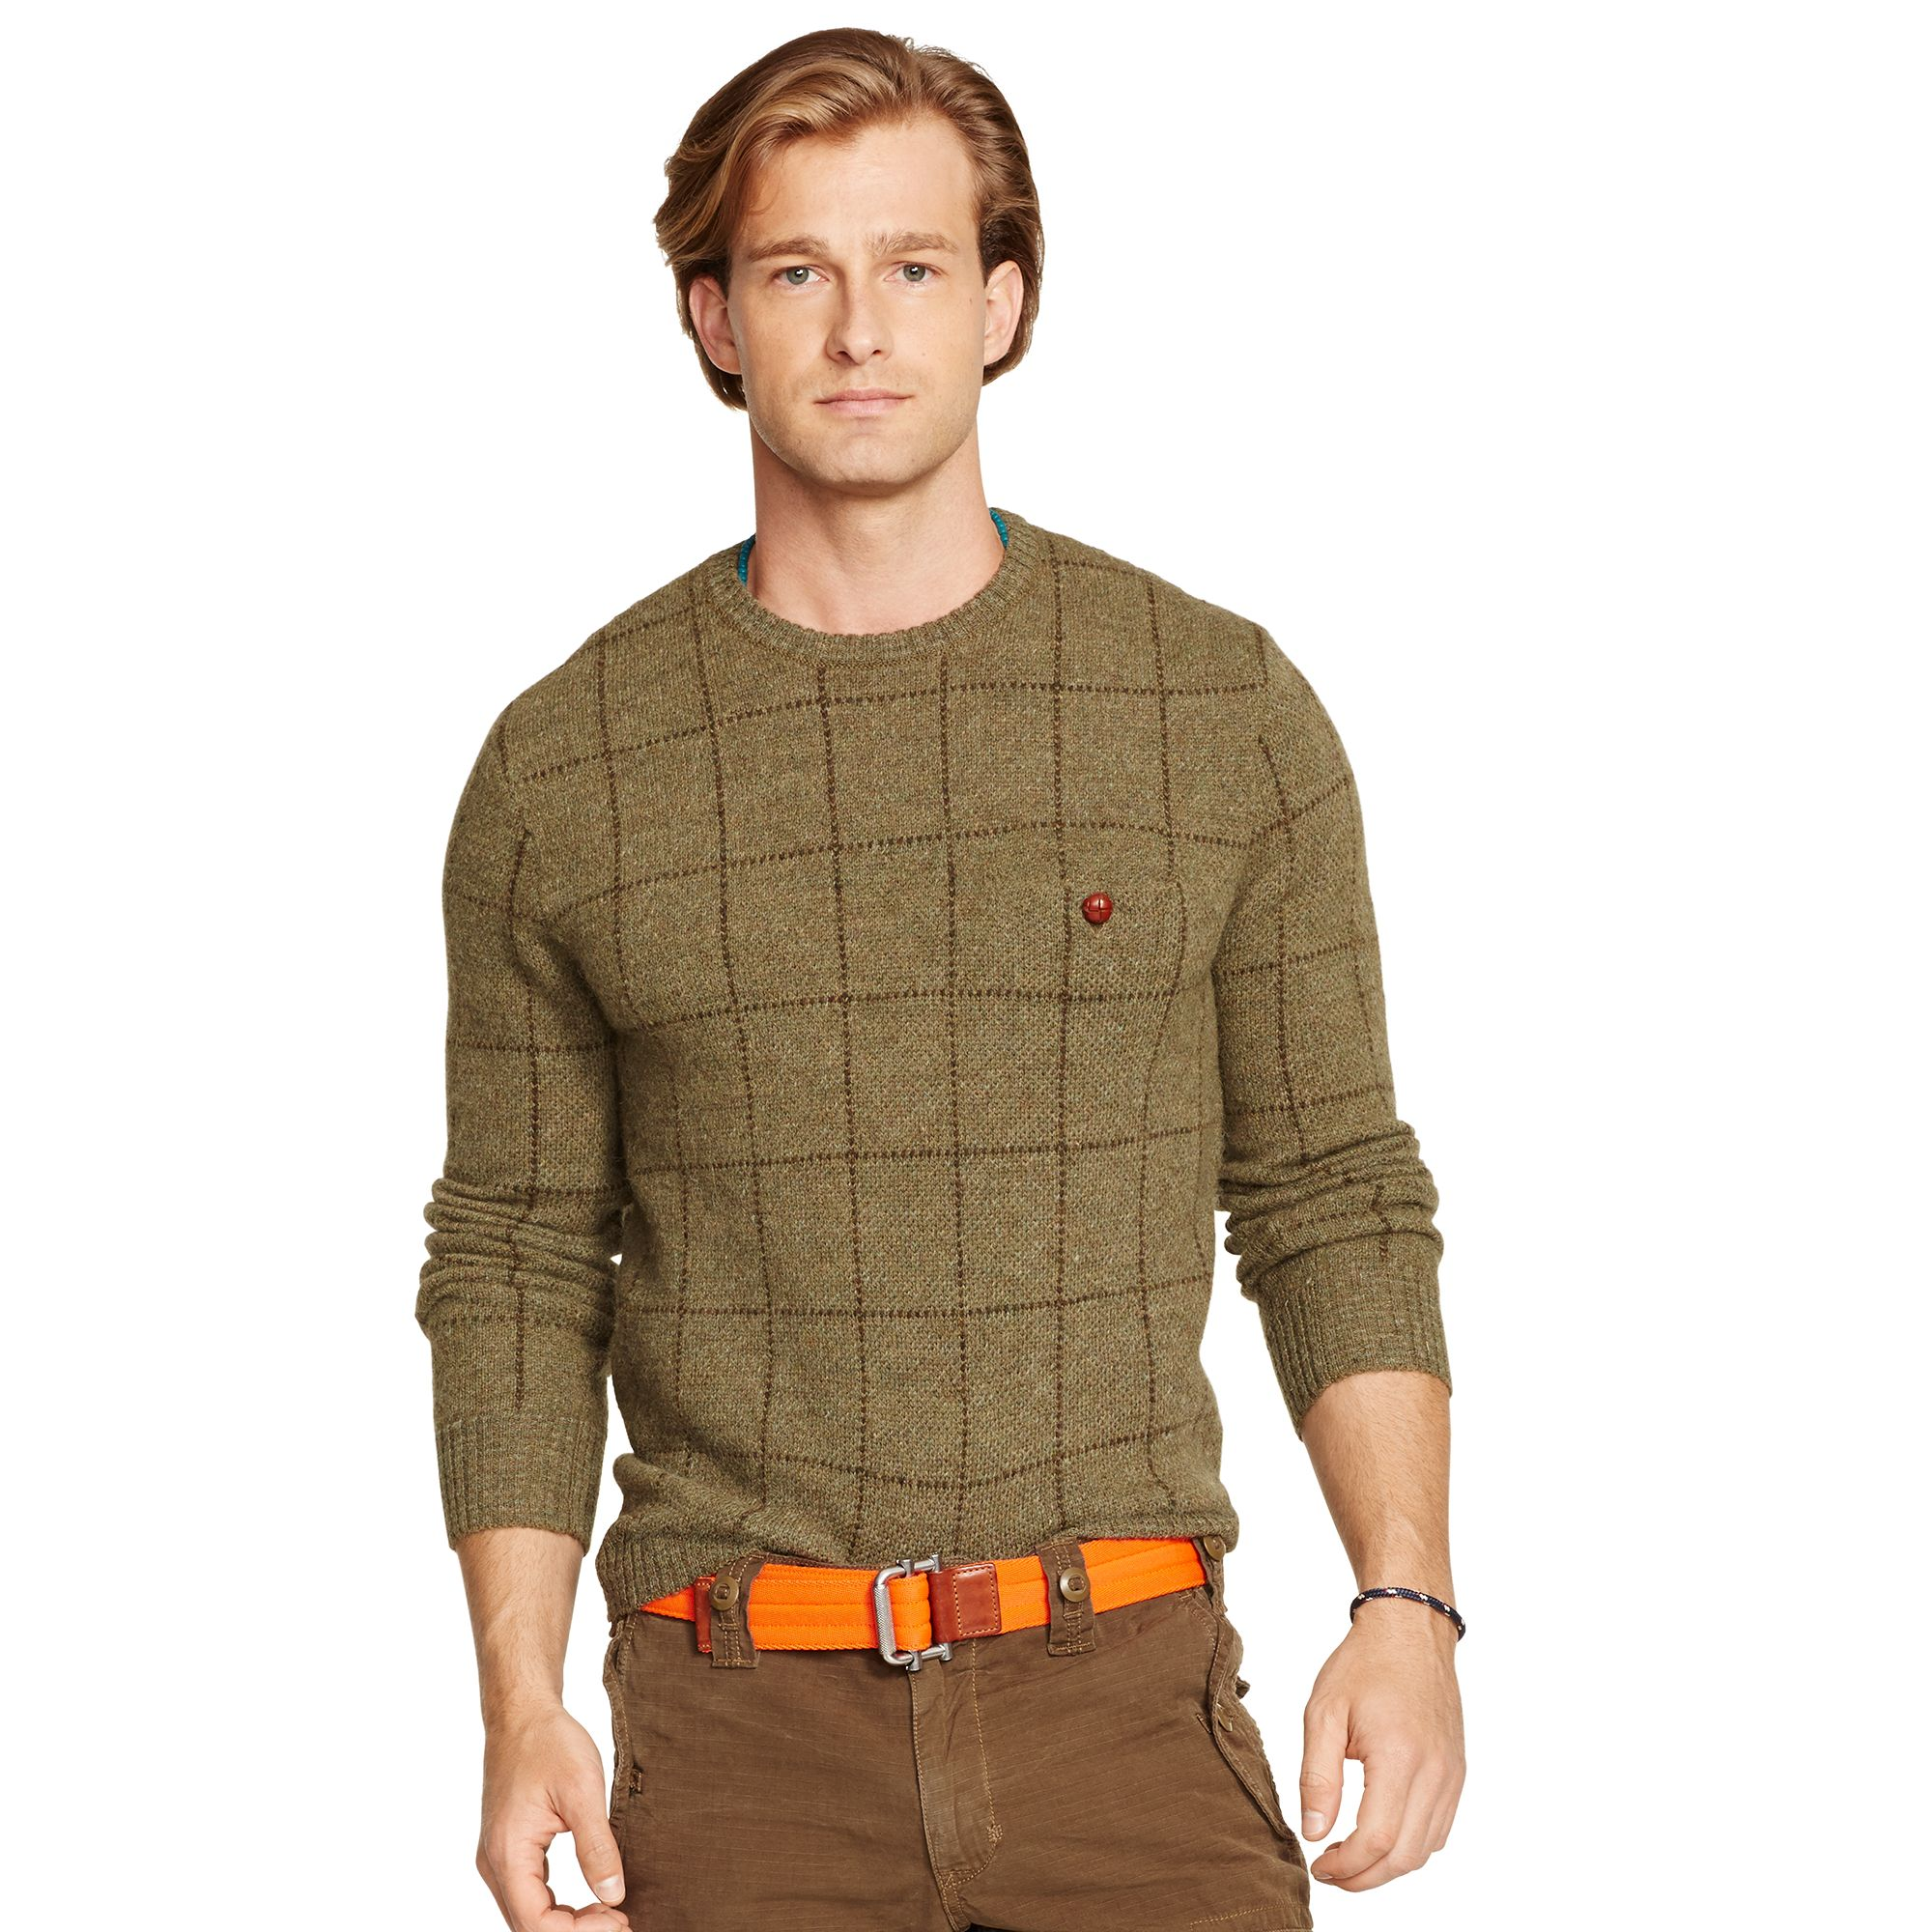 Ralph Lauren Latest Fall Winter Coats and Western Dresses Sweaters Collection for Men and Women 2014-2015 (25)